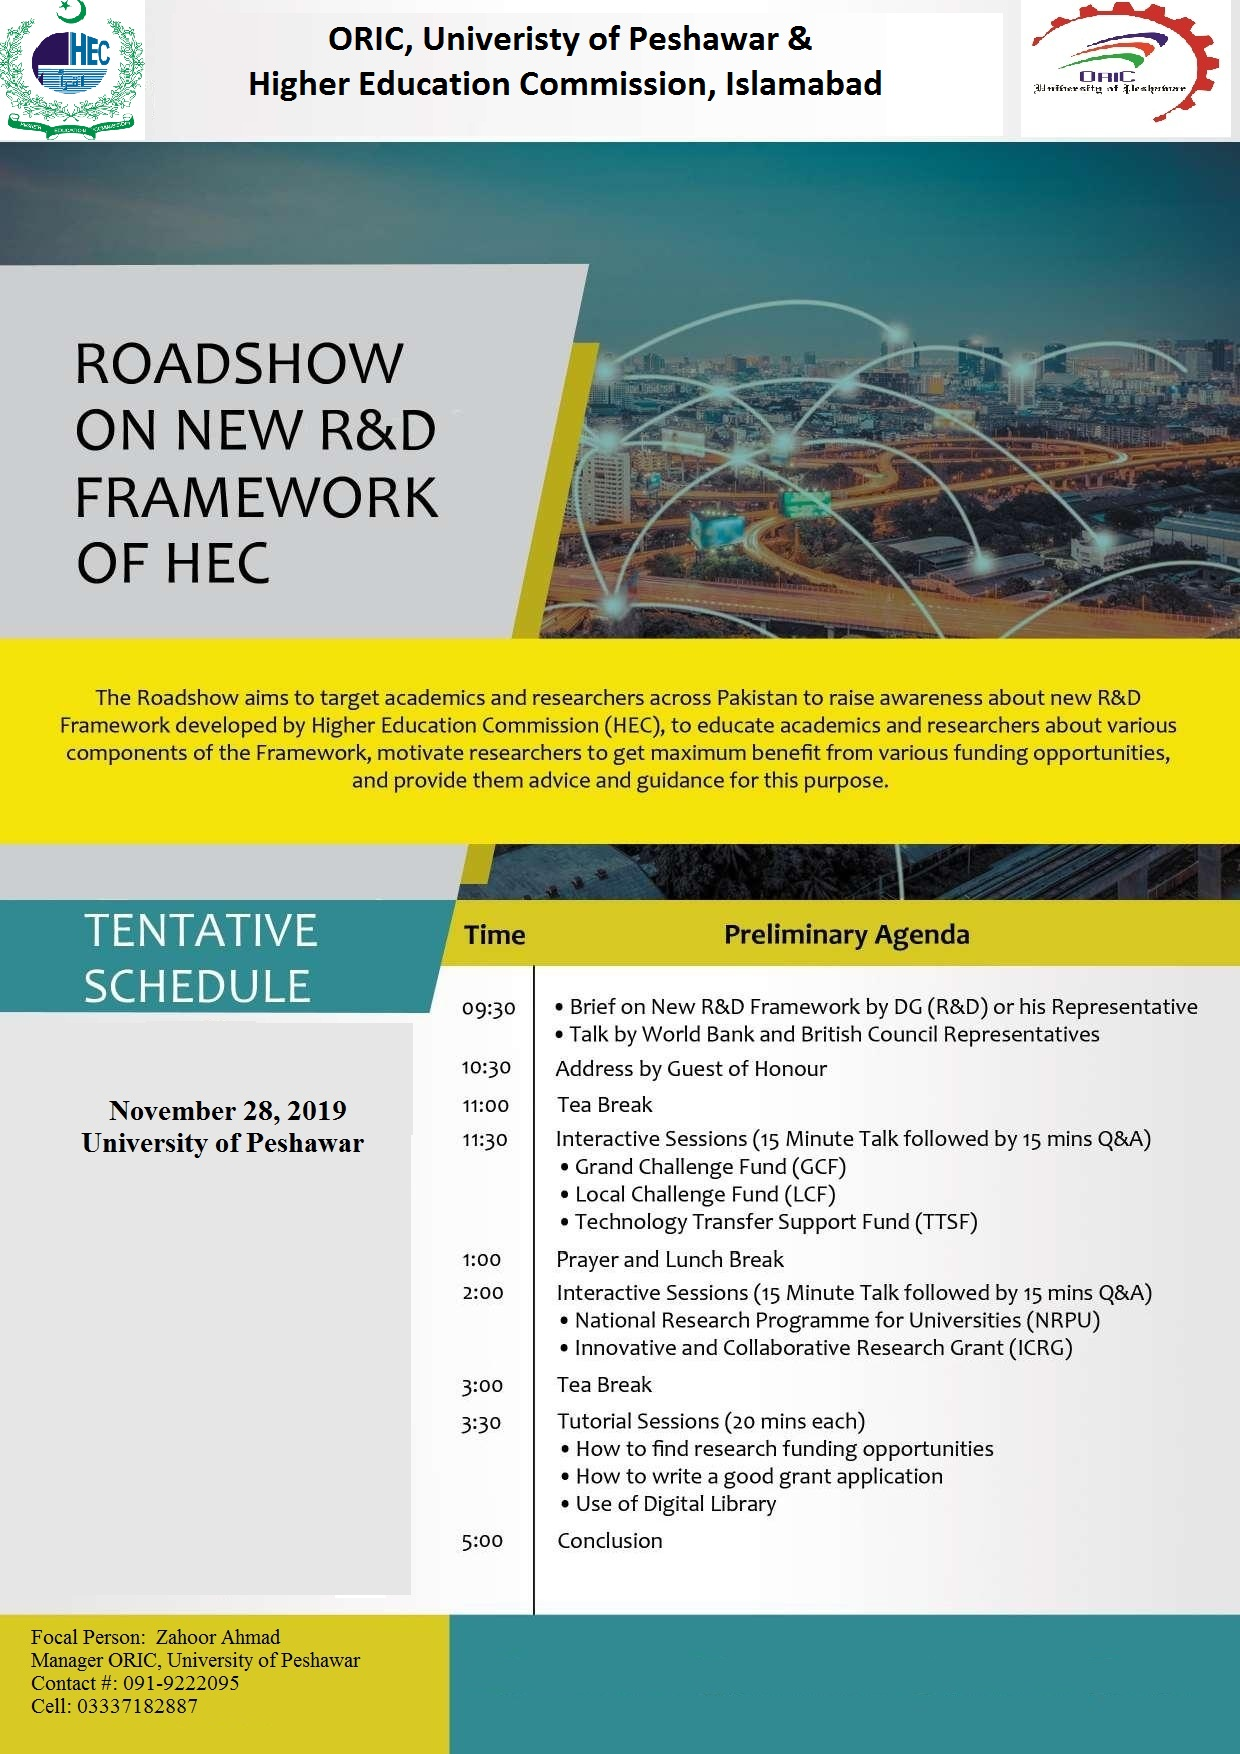 Road Show on New R&D Framework of HEC, Pakistan